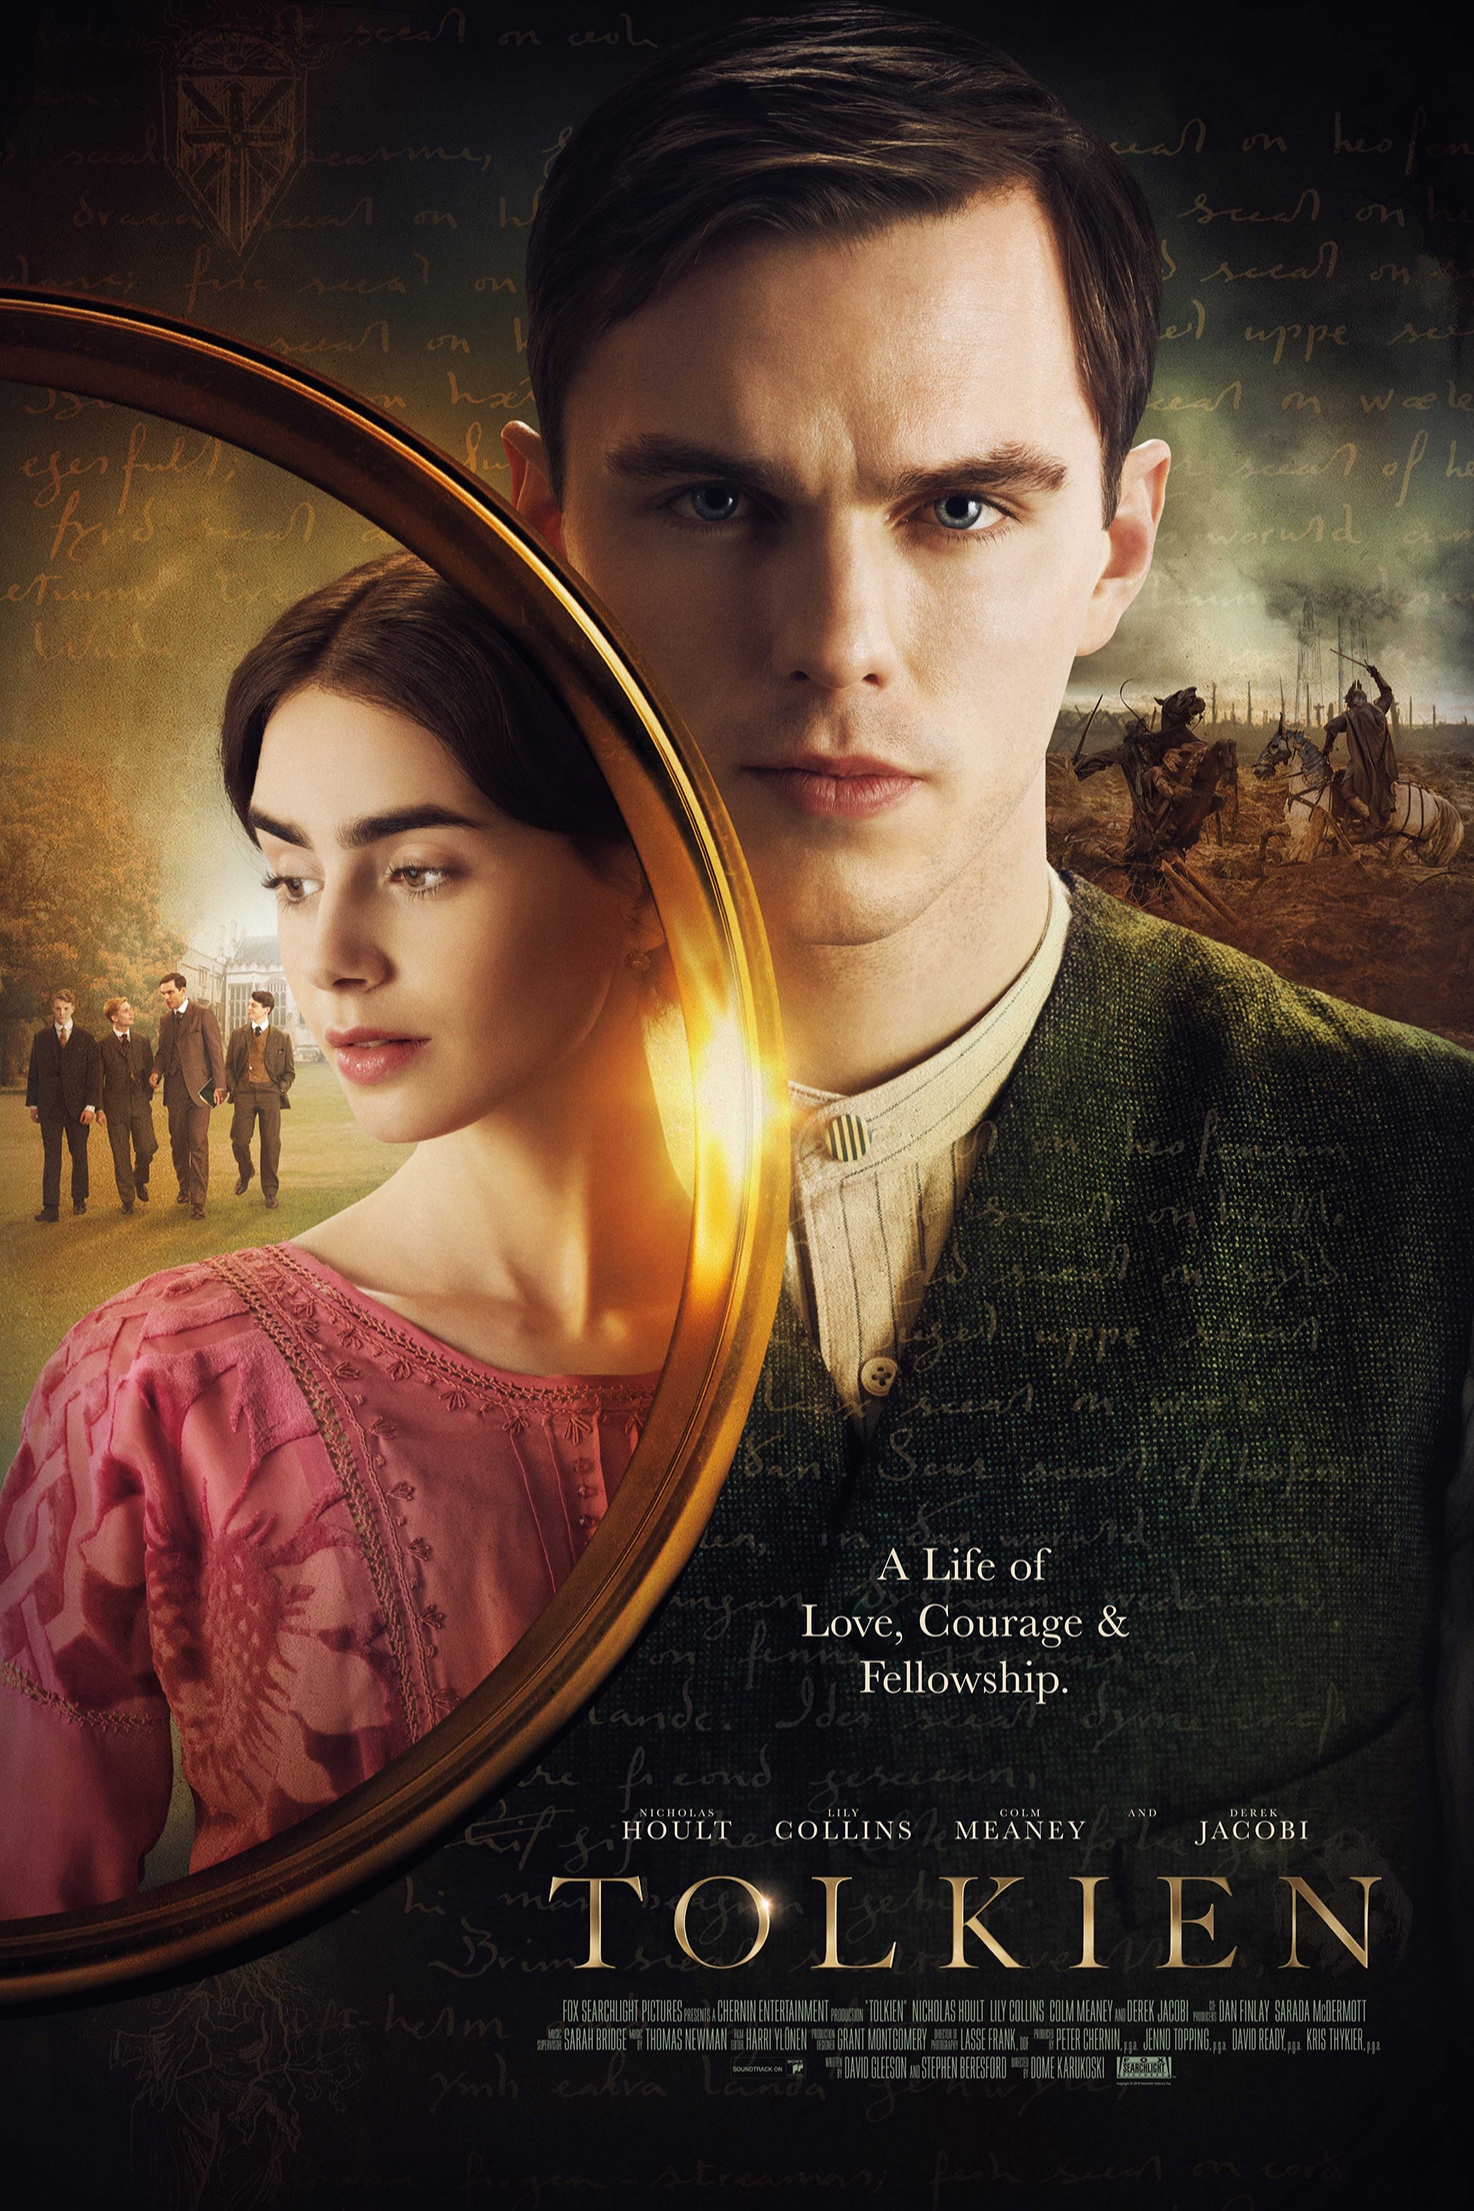 TOLKIEN - Starring Nicholas Hoult (THE FAVOURITE) as the young John Tolkien, the film is a powerful story of friendship, love and loss, uncovering how a lonely orphan grew up to capture the world's imagination with The Hobbit and The Lord of the Rings.Raised by a devoted and imaginative mother who died tragically when he was only 12, Tolkien was left to carve his own precarious path. But his luck changes when he meets a group of fellow misfits at school who turn out to be kindred spirits. Sharing a love of art and a passion for seizing the moment, Tolkien and his three best friends form a secret fellowship which will help him find his true self, and shape the man that he becomes.During this time he also meets a talented young pianist called Edith (Lily Collins, Les Miserables), and begins to fall in love. But their story will be far from straightforward. Banned from seeing each other by Tolkien's guardian, the two are forced apart, and Edith becomes engaged to somebody else. Will they find their way back to each other in spite of everything?When the First World War breaks out, it threatens to tear Tolkien apart from everything he loves. His experiences at the Battle of the Somme, where he fights alongside his school-friends, will bring heartbreaking loss – but also the inspiration for some of the best-loved stories ever written.Directed by Dome Karukoski (TOM OF FINLAND), TOLKIEN is written by David Gleeson (COWBOYS & ANGELS) and Stephen Beresford (PRIDE). The film also stars Colm Meaney and Derek Jacobi.